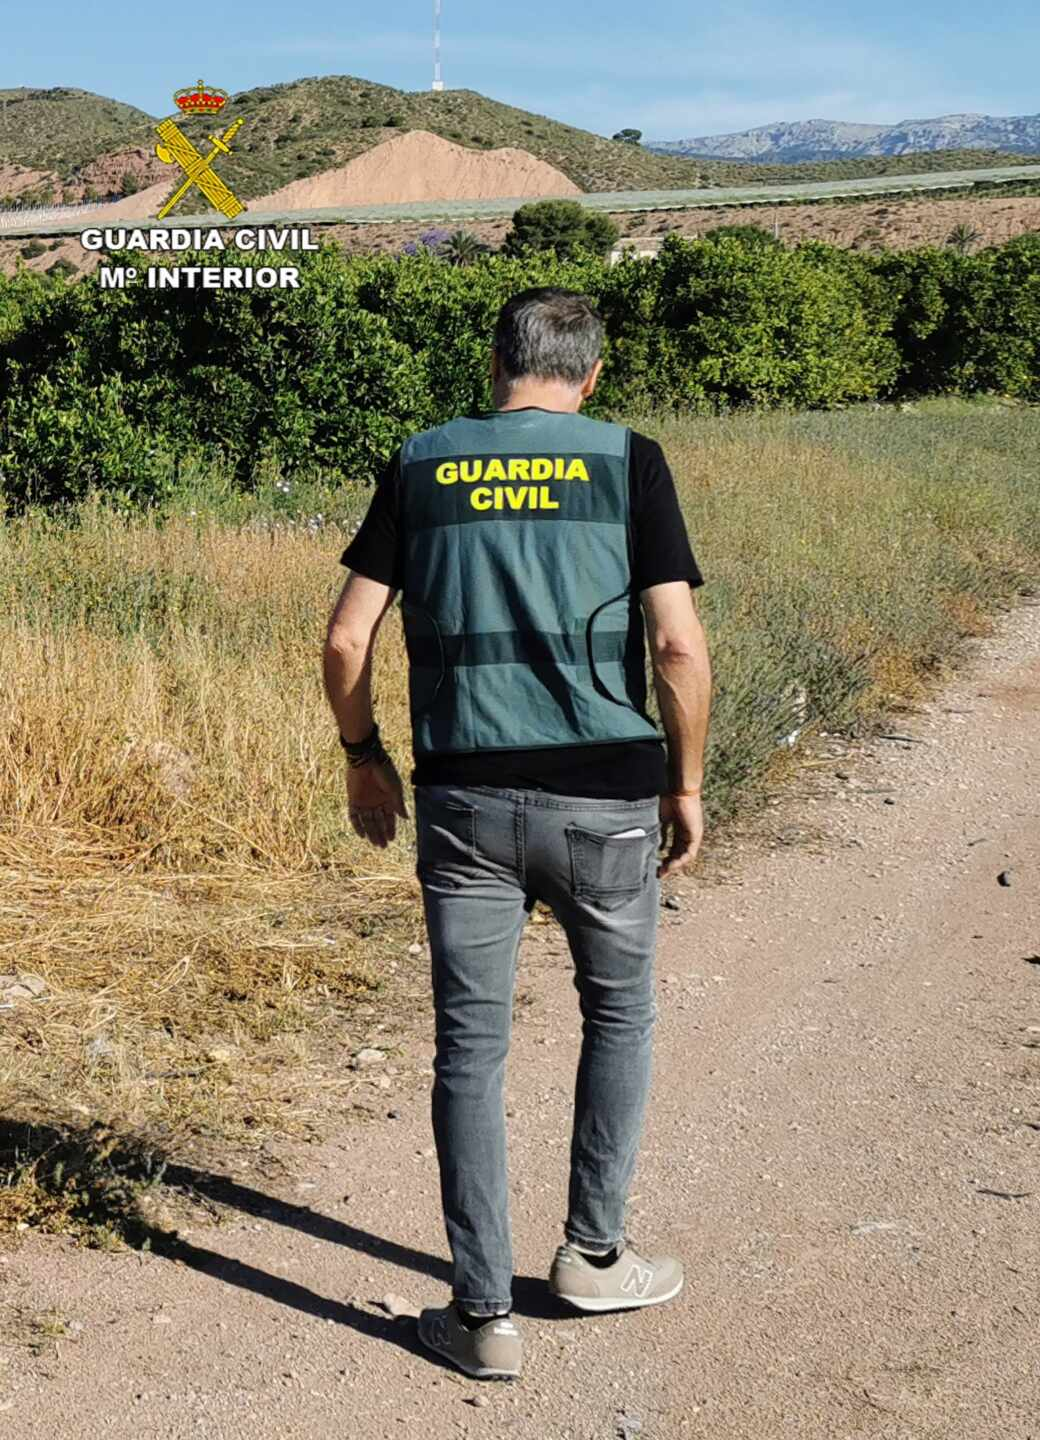 Un Guardia Civil de espaldas.